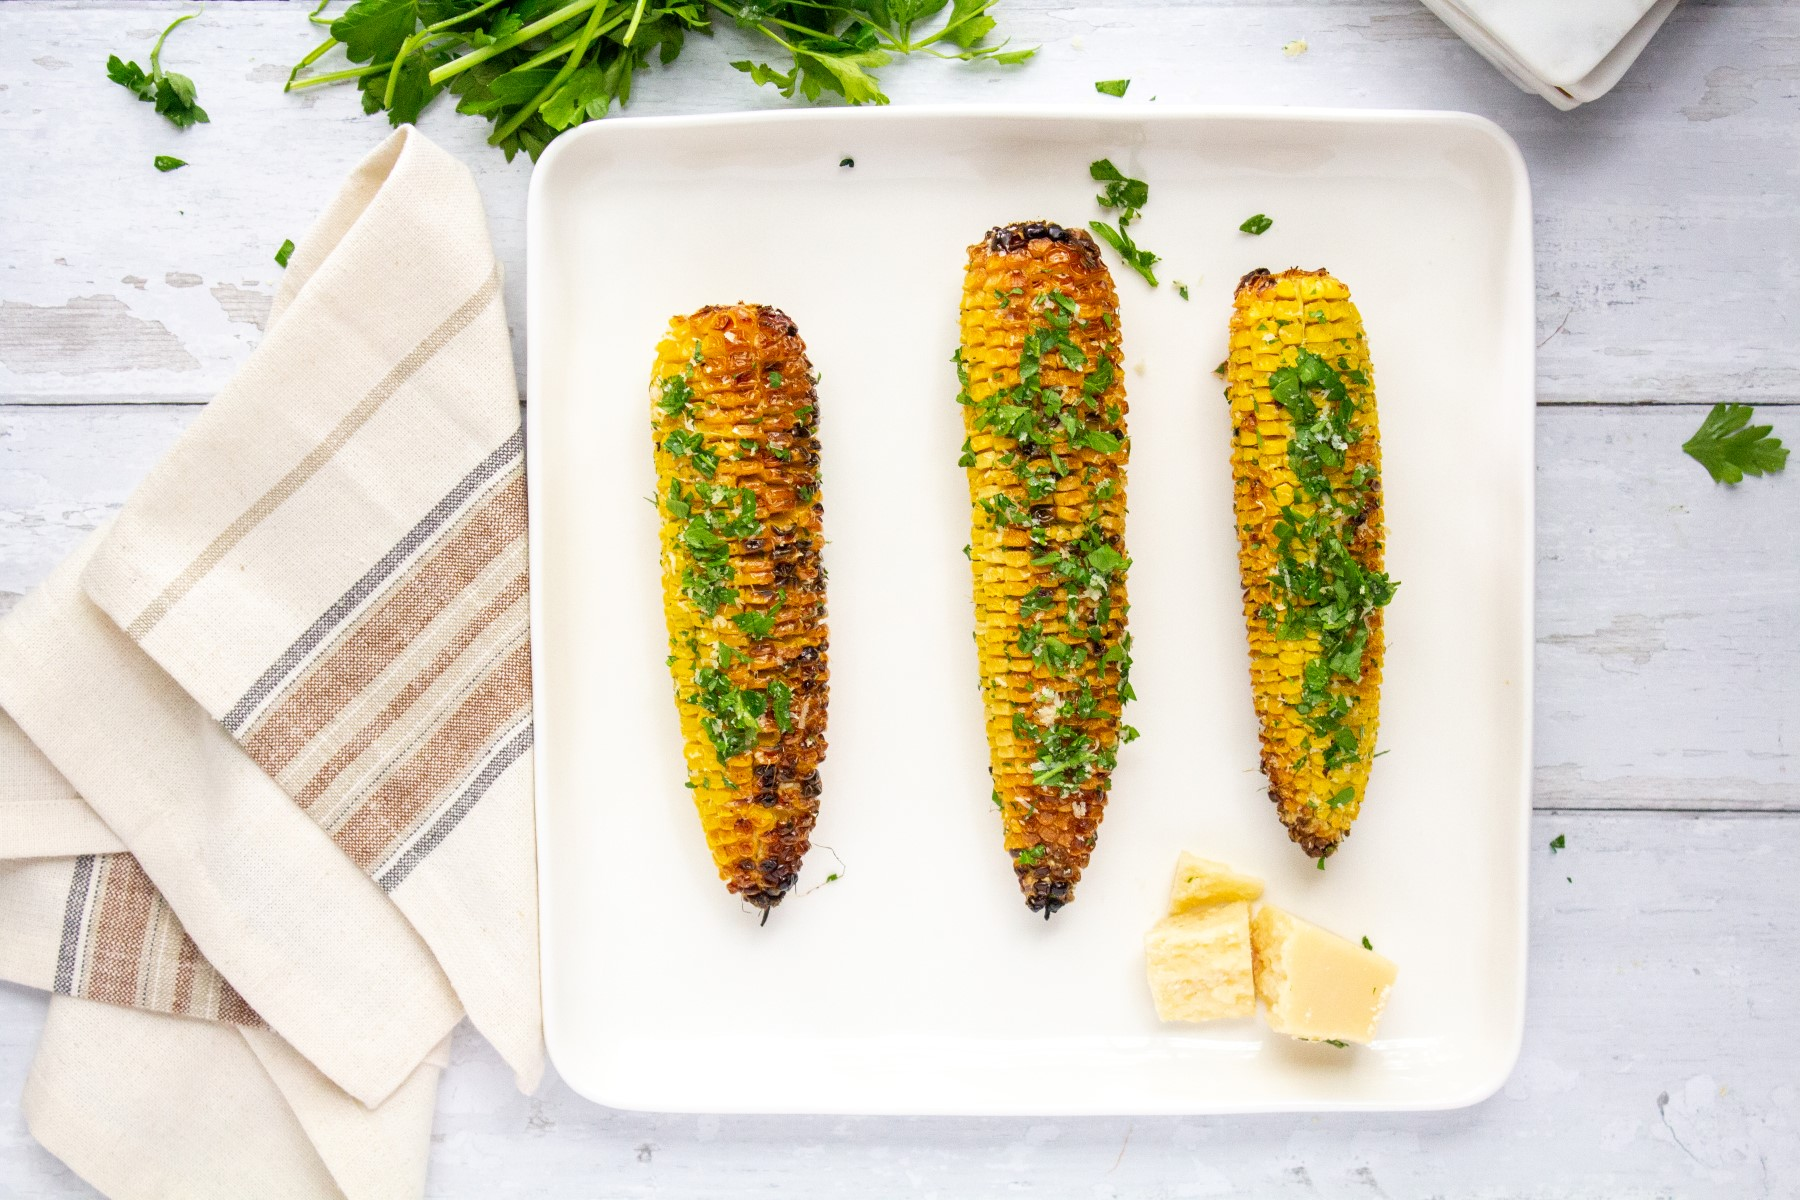 3 cobs of grill corn on the cob on a white platter, sitting on a white wooden table.